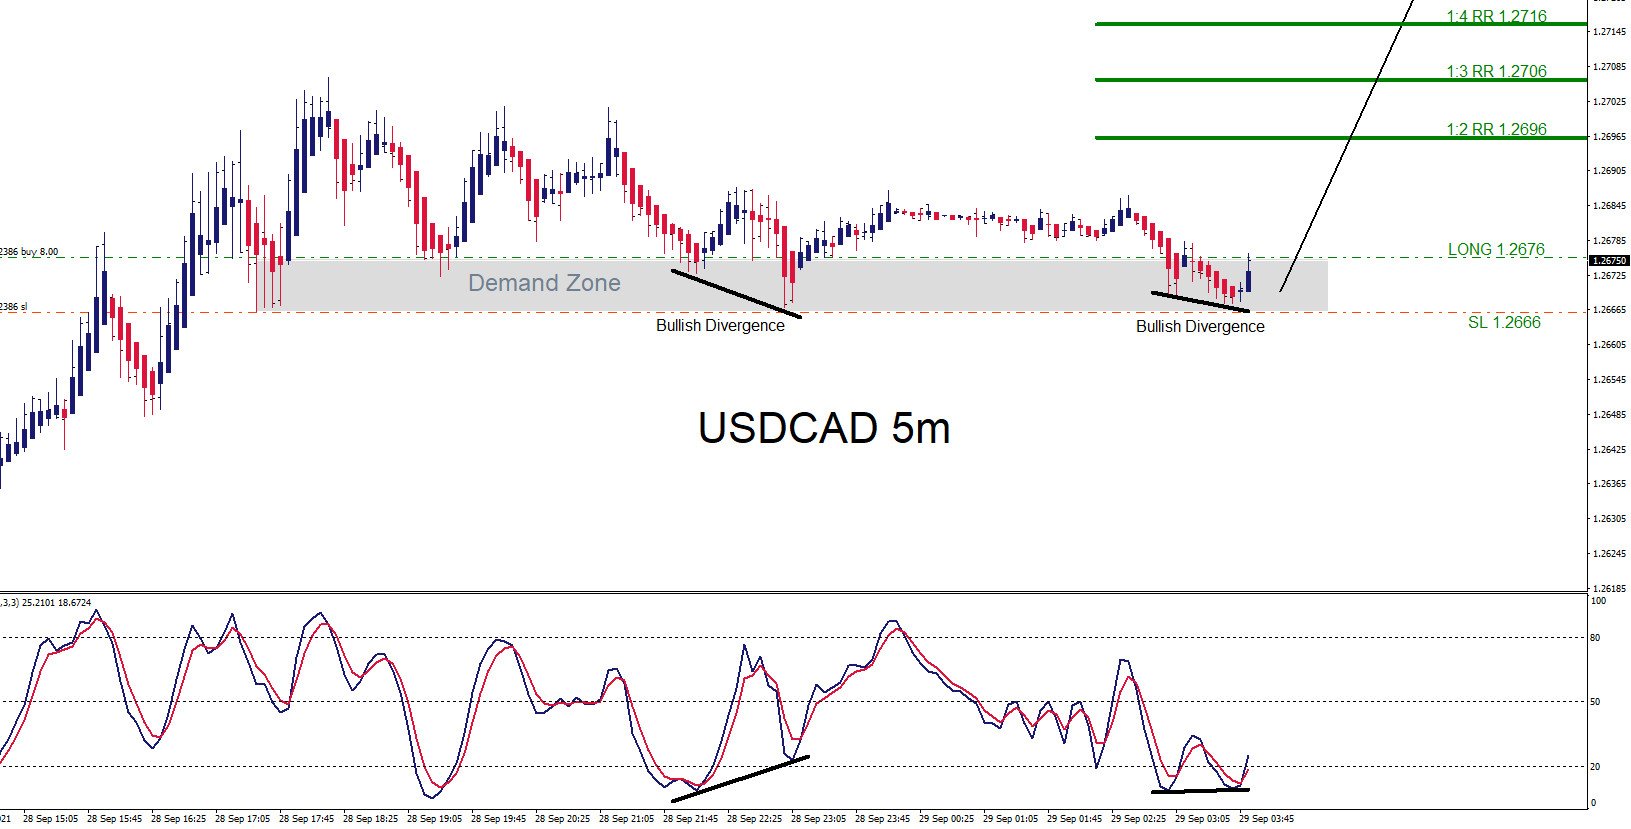 USDCAD : Trading the Move Higher